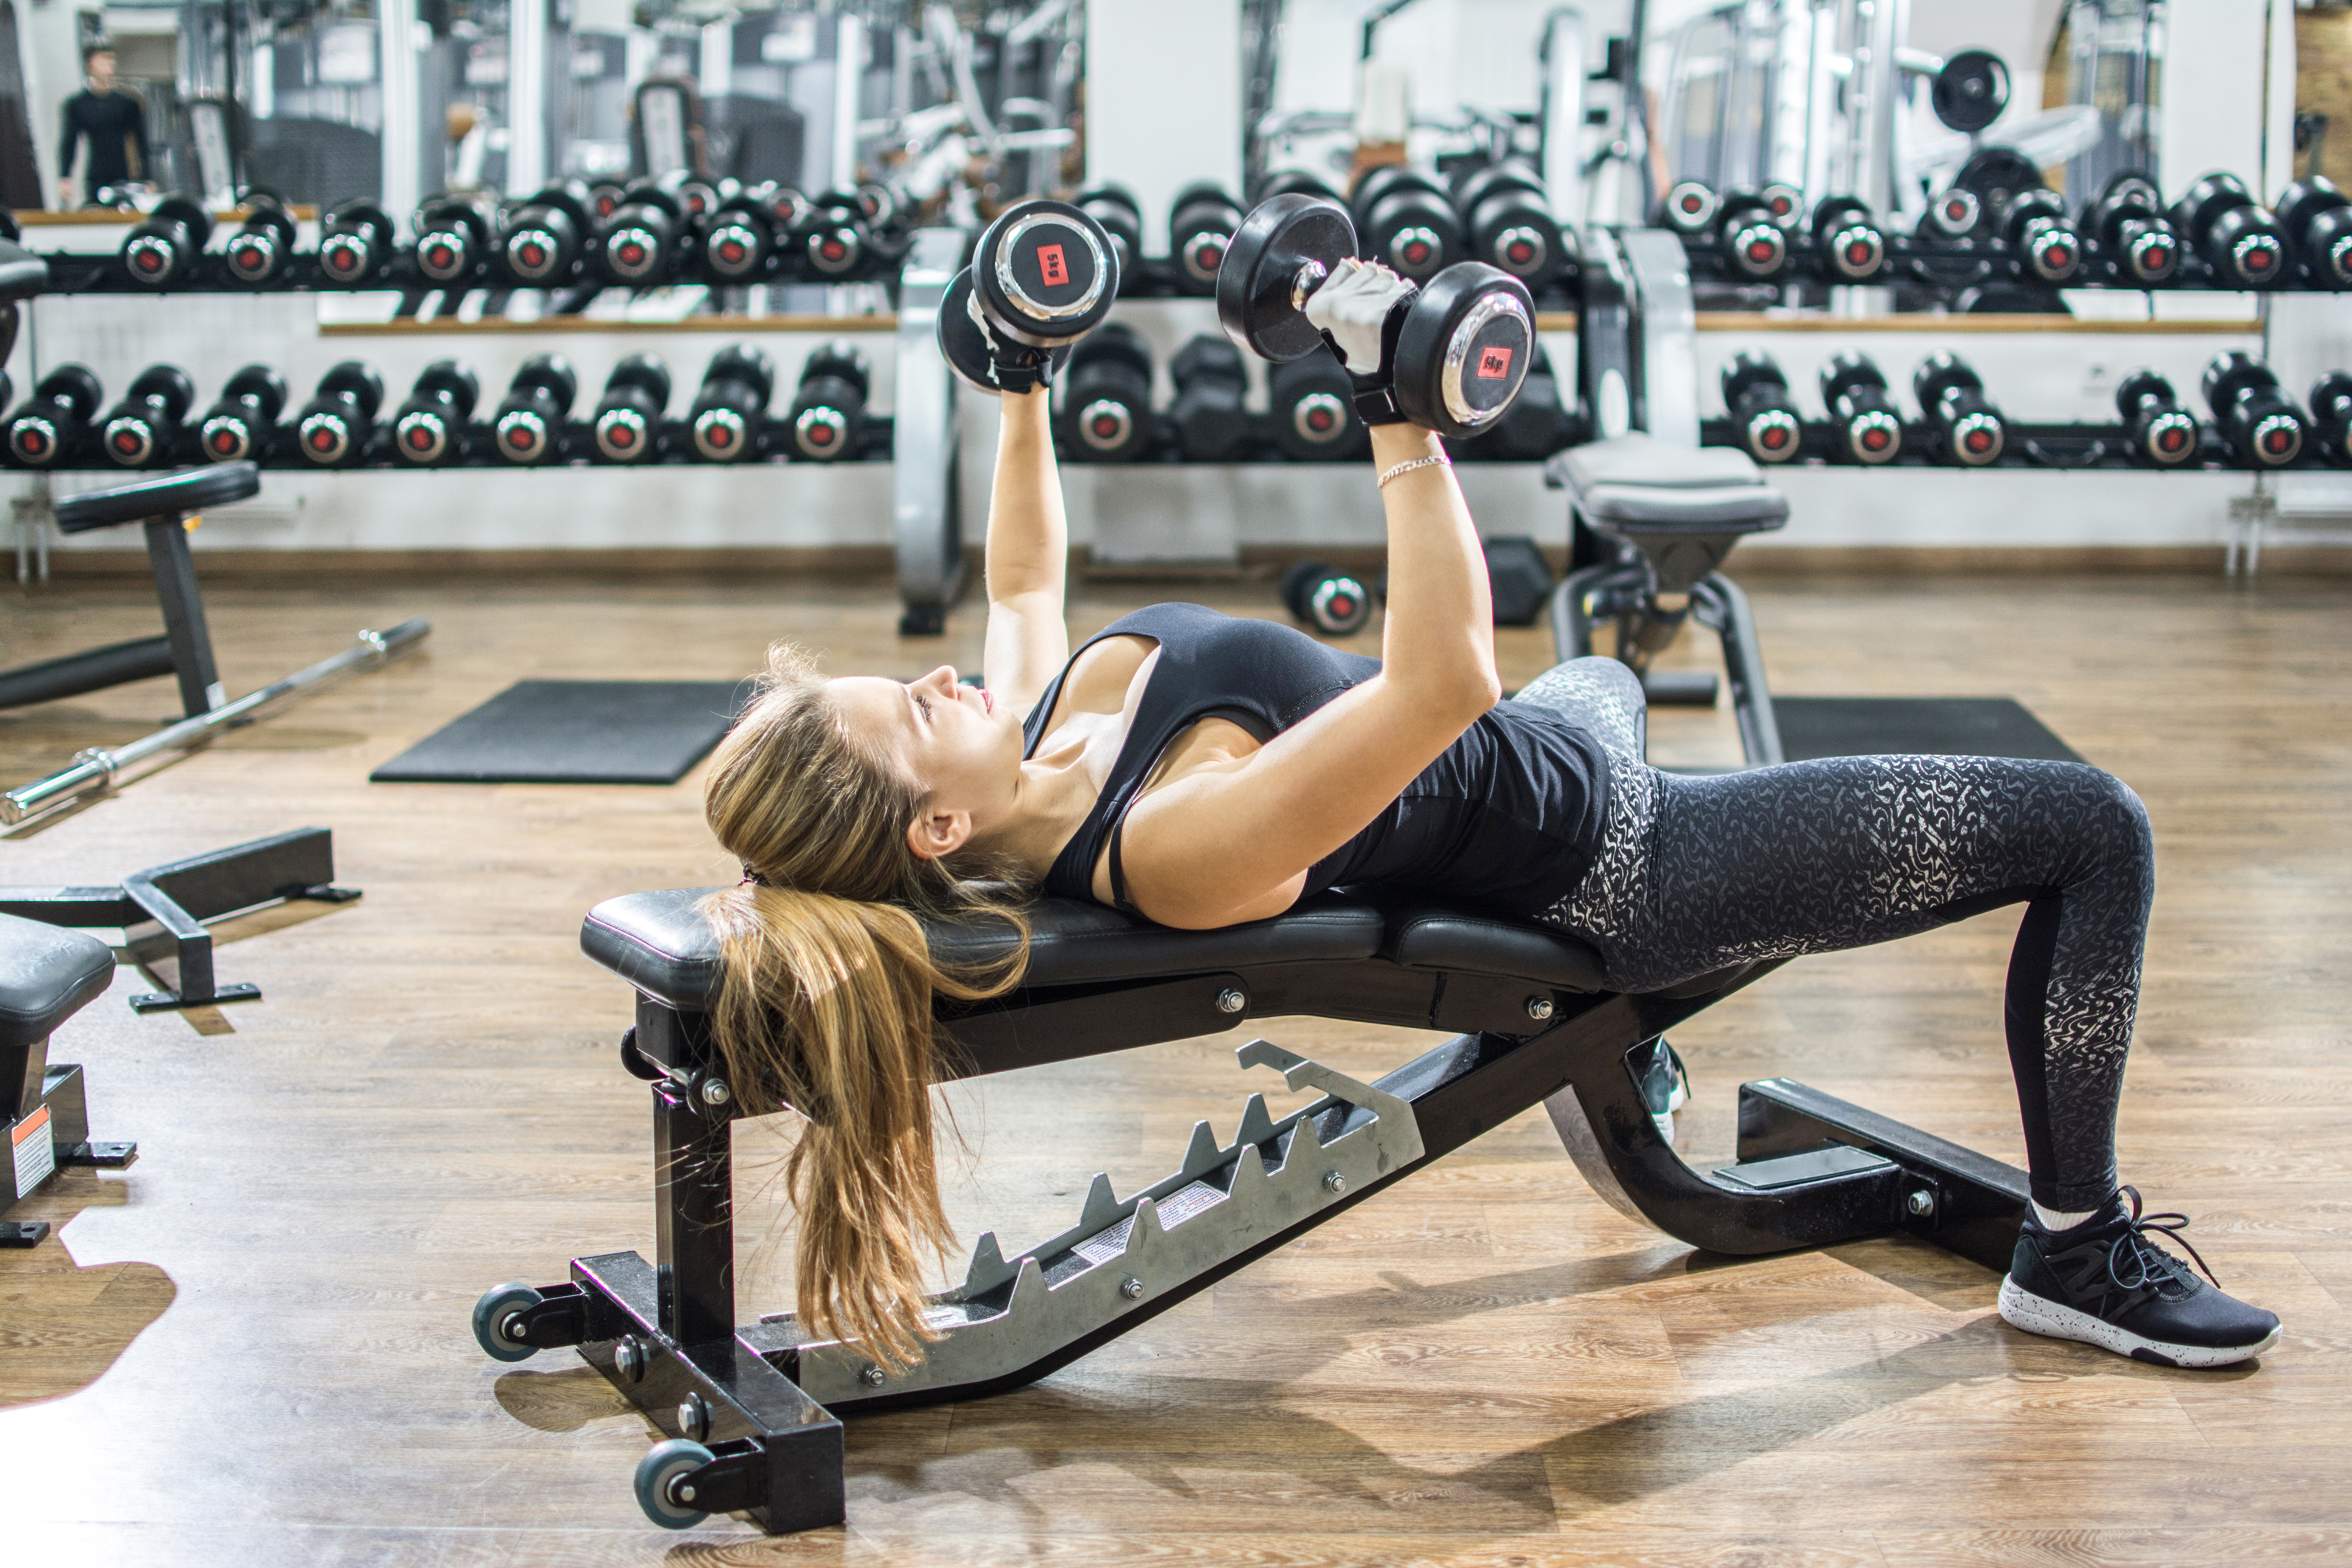 Weight­lifting is the priciest indoor activity at £61